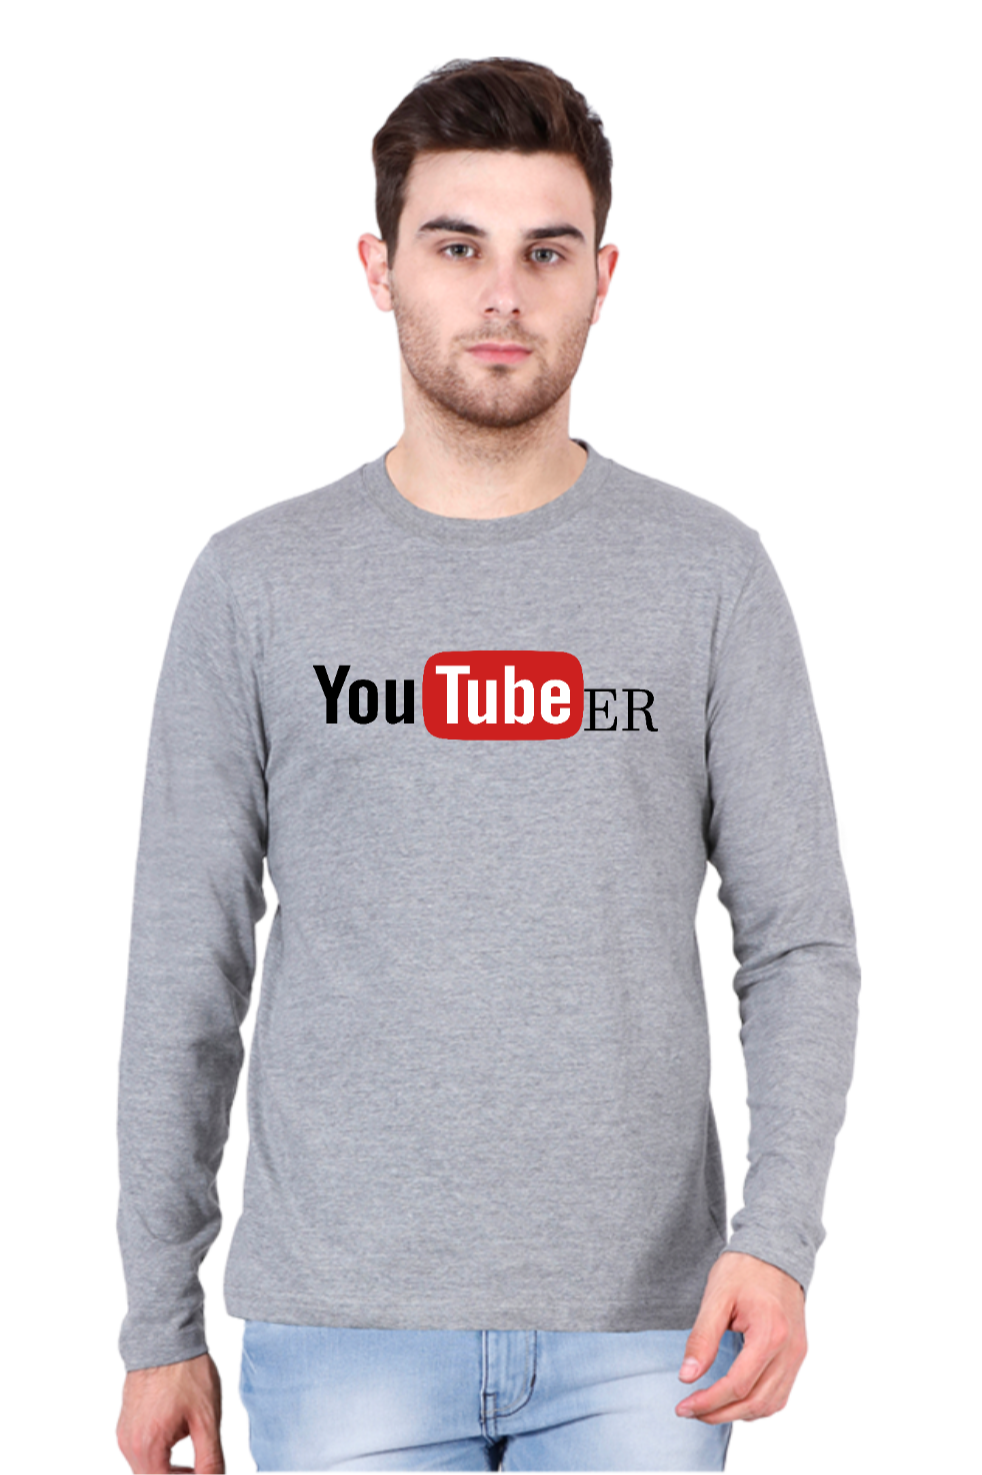 YOUTUBER - FULL SLEEVE T-SHIRT ©